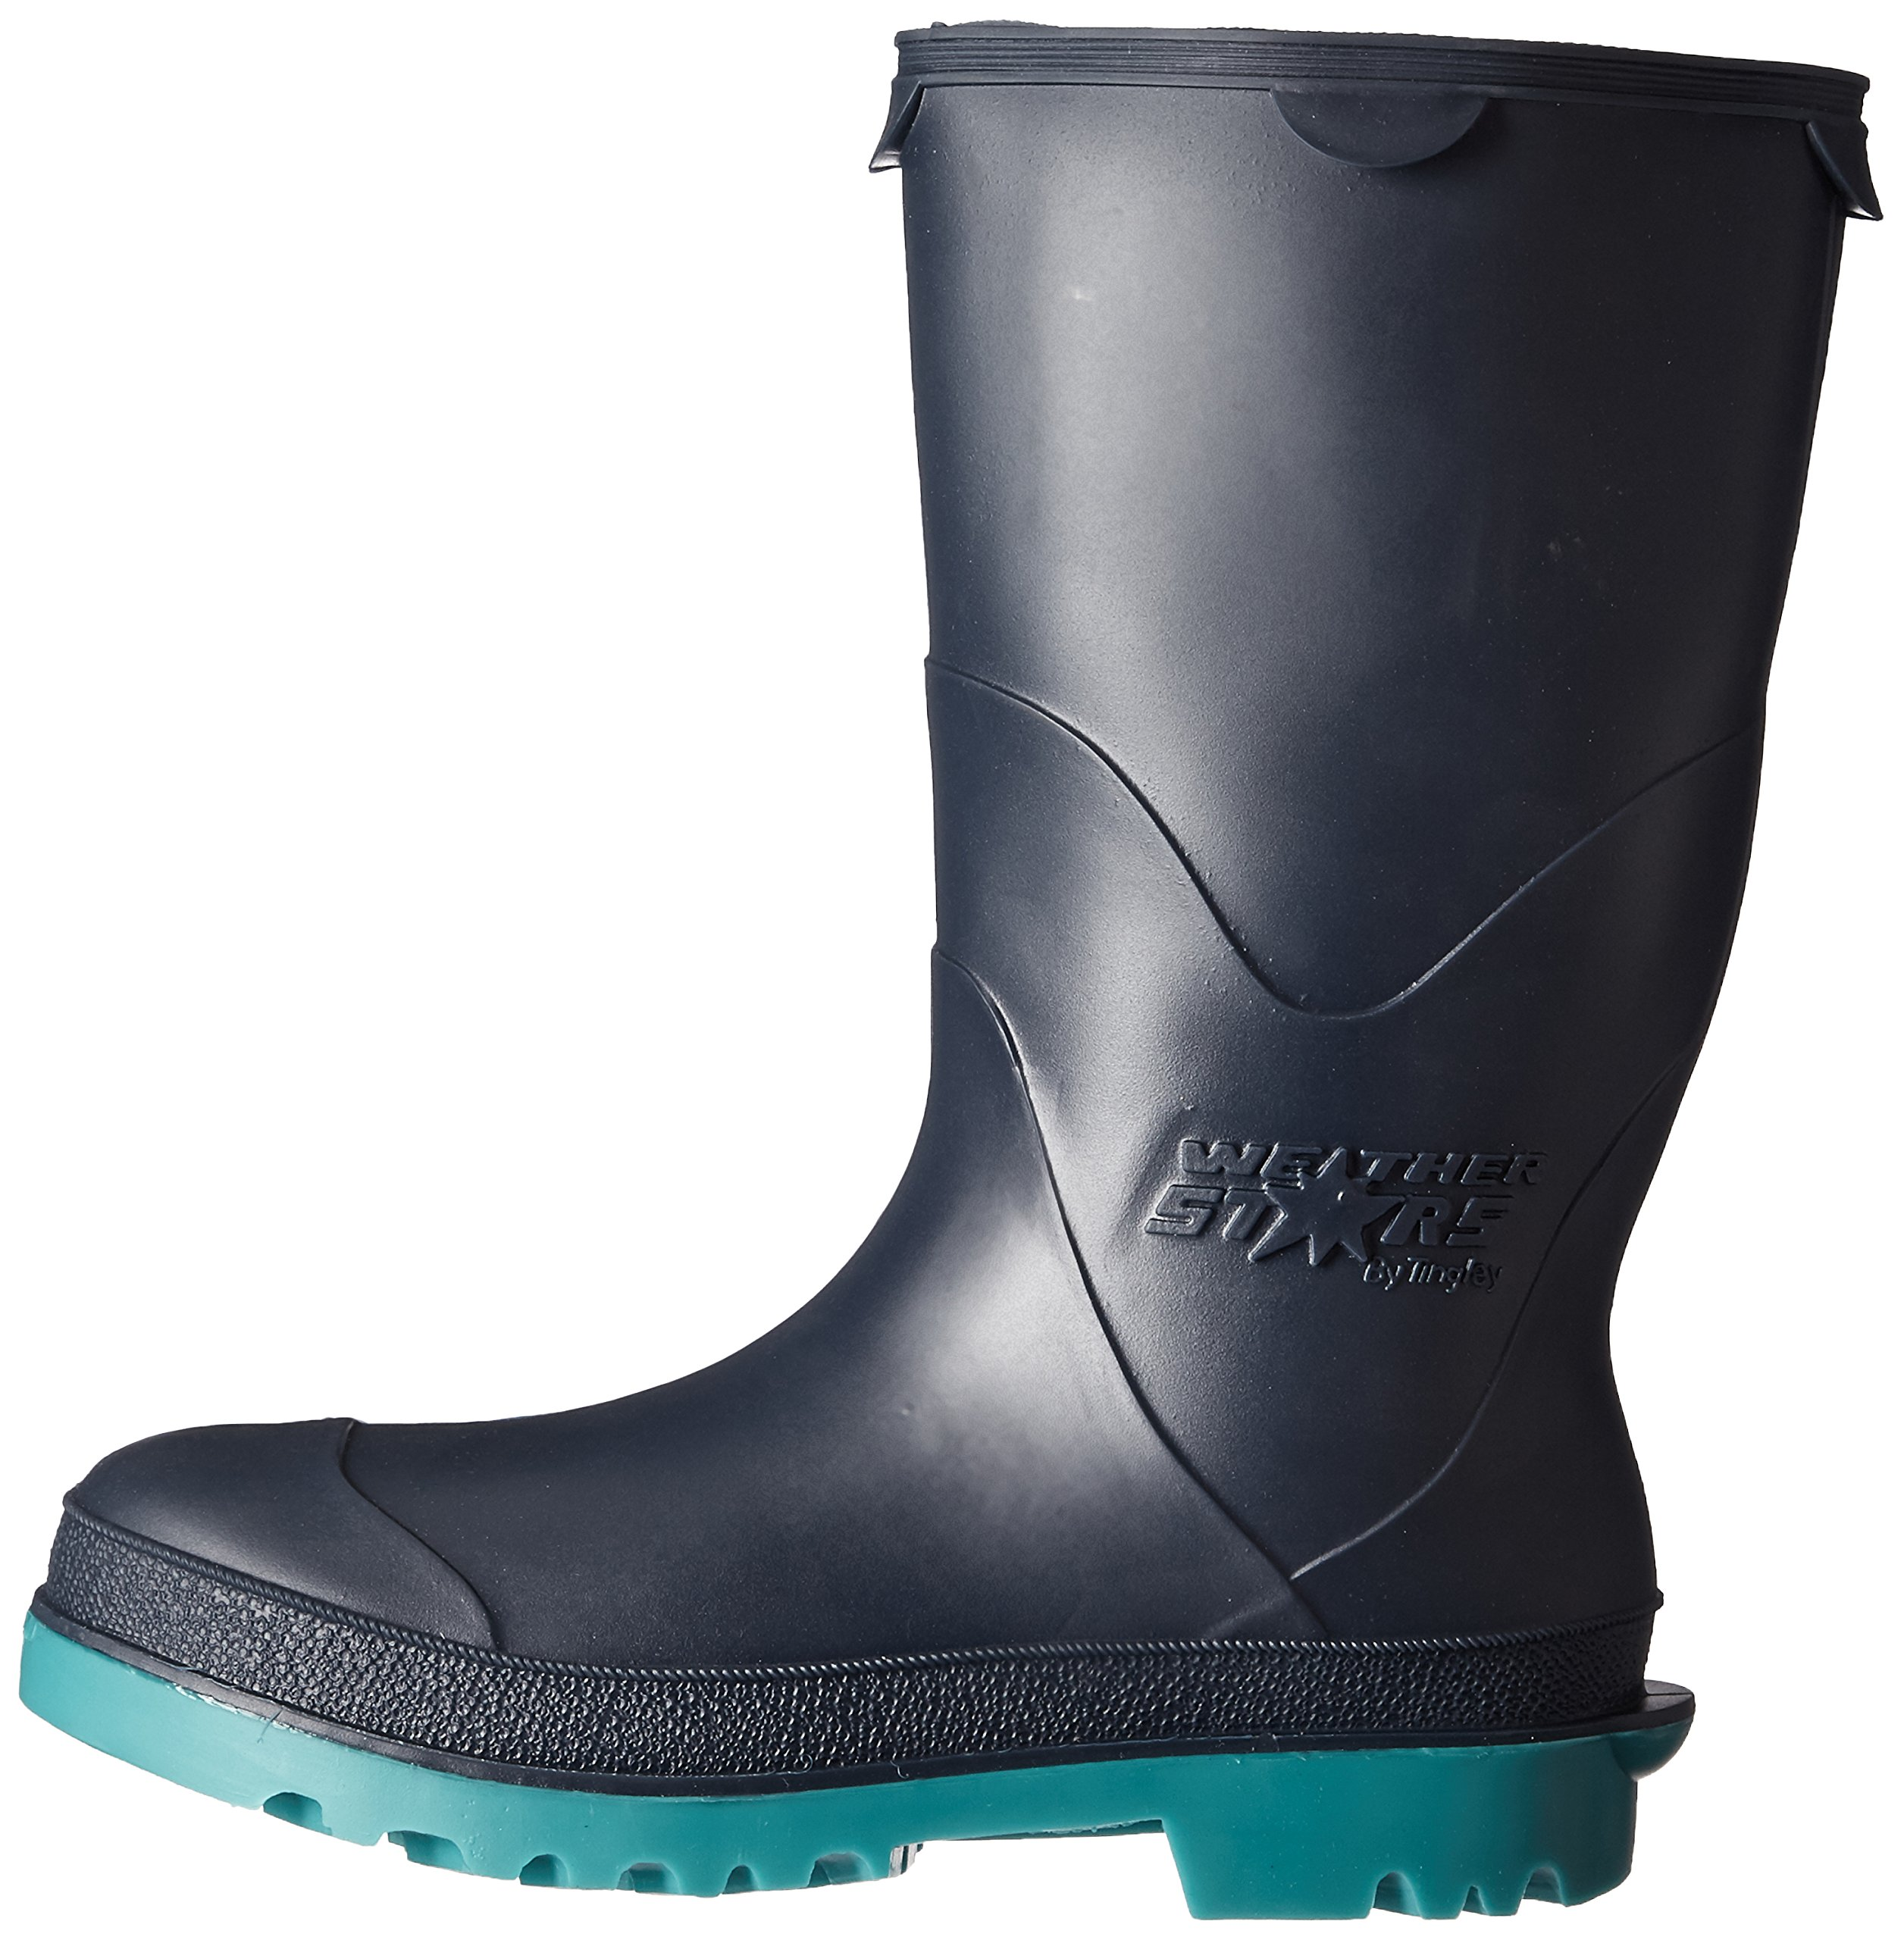 STORMTRACKS 11768.03 Youths' Boot, Size 03, Blue/Green by STORMTRACKS (Image #5)